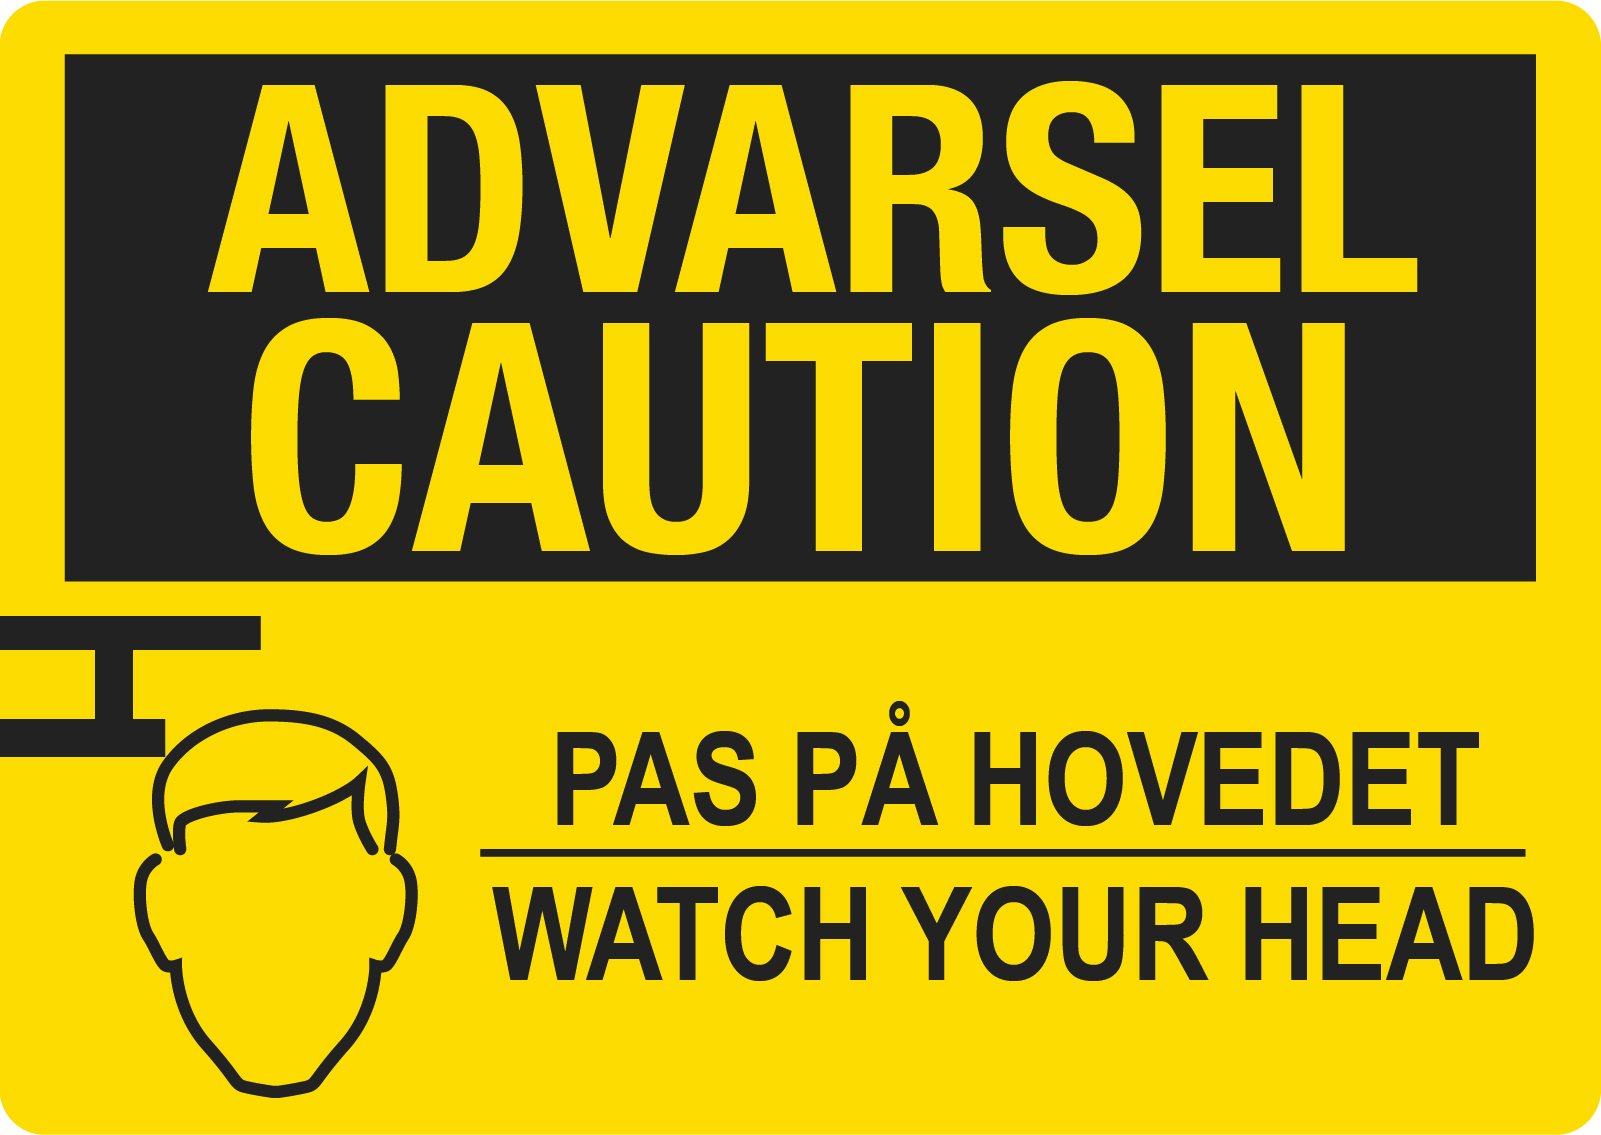 Advarsel Caution advarsel skilt